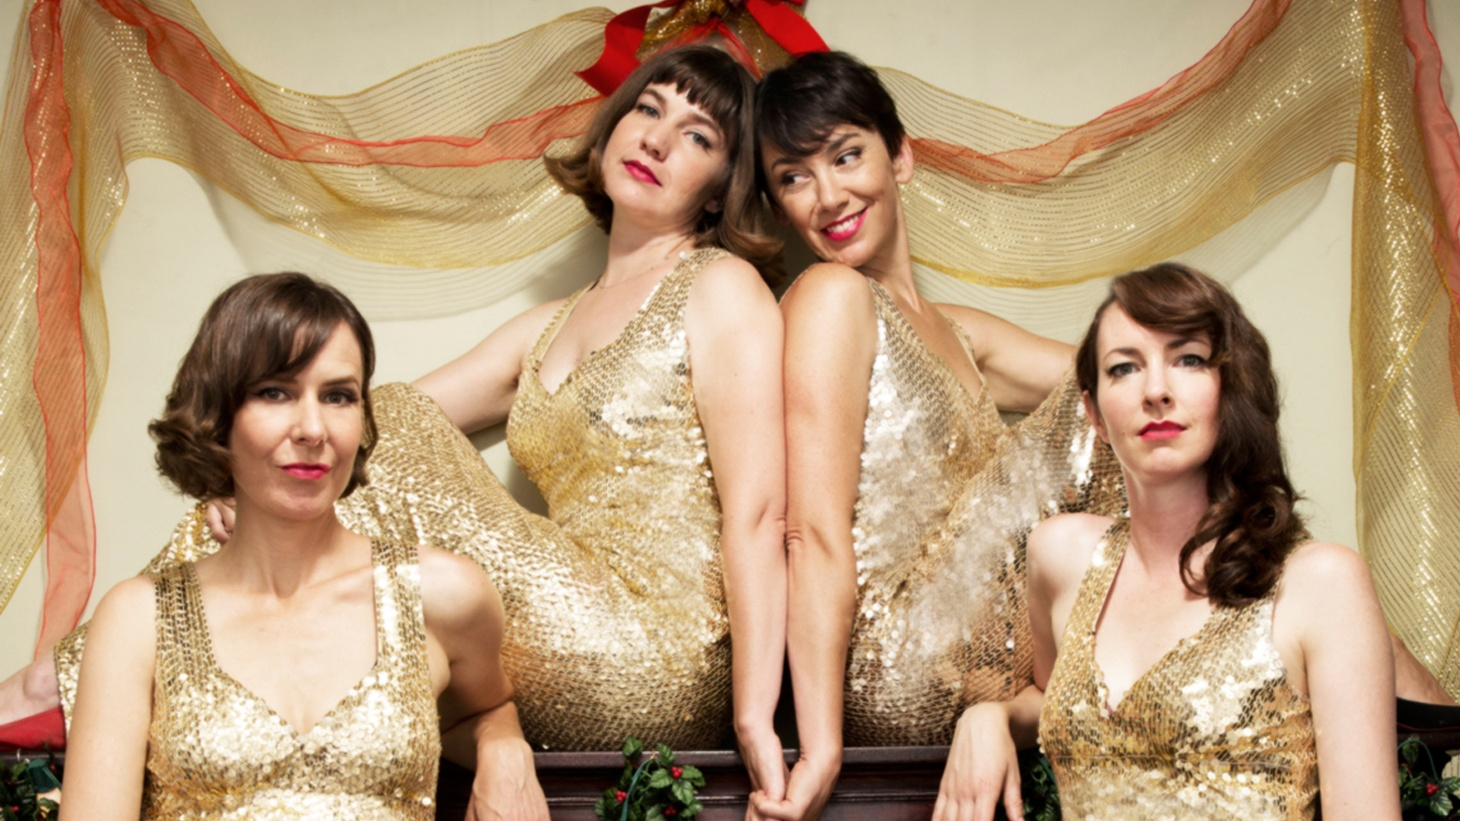 The holidays come early here at KCRW with four of our favorite female voices teaming up yet again for an album of clever seasonal favorites.